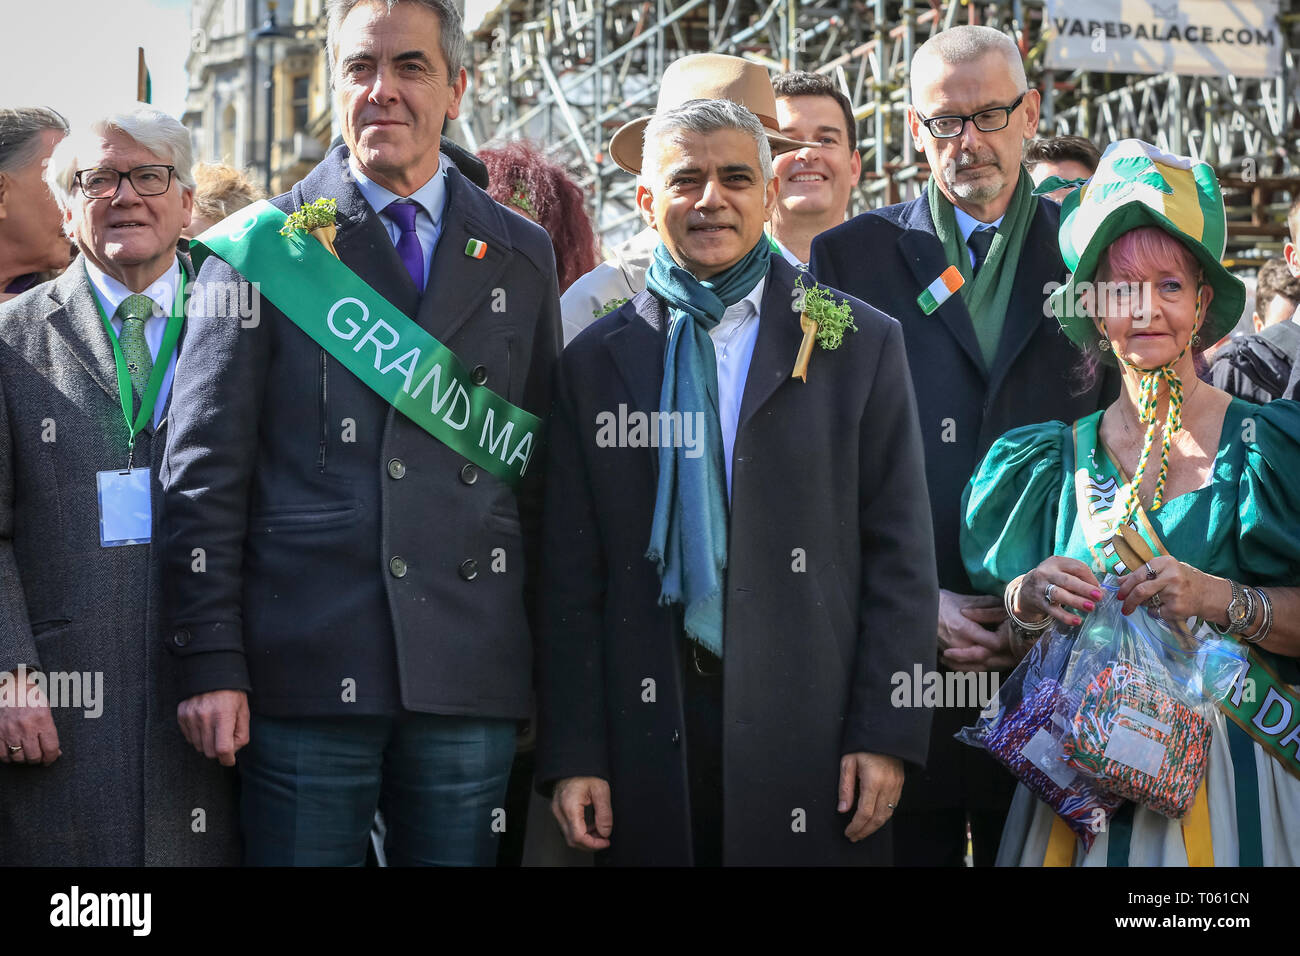 London, UK, 17th Mar 2019. St Patrick's Day Parade photocall with Mayor of London Sadiq Khan (r) and this year's  Grand Marshal, actor James Nesbitt (l). London celebrates with a spectacular St Patrick's Day parade, led by this year's Grand Marshal, actor James Nesbitt. Now in its 17th year, the parade attracts more than 50,000 people for a colourful procession of Irish marching bands from the UK, US and Ireland, energetic dance troupes and spectacular pageantry. Credit: Imageplotter/Alamy Live News - Stock Image